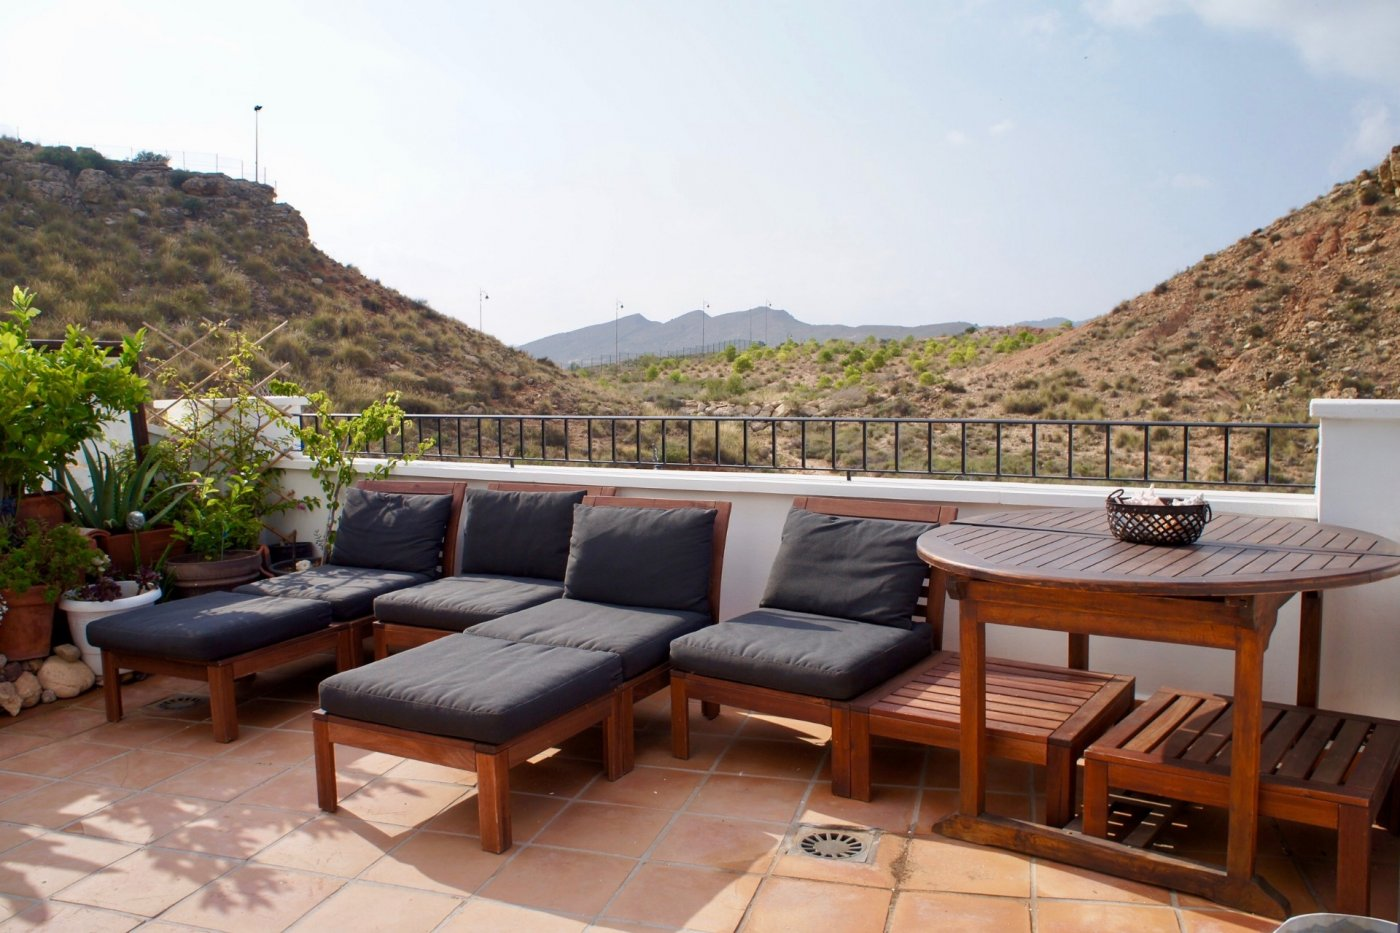 Image 6 Apartment ref 3265-03023 for sale in El Valle Golf Resort Spain - Quality Homes Costa Cálida